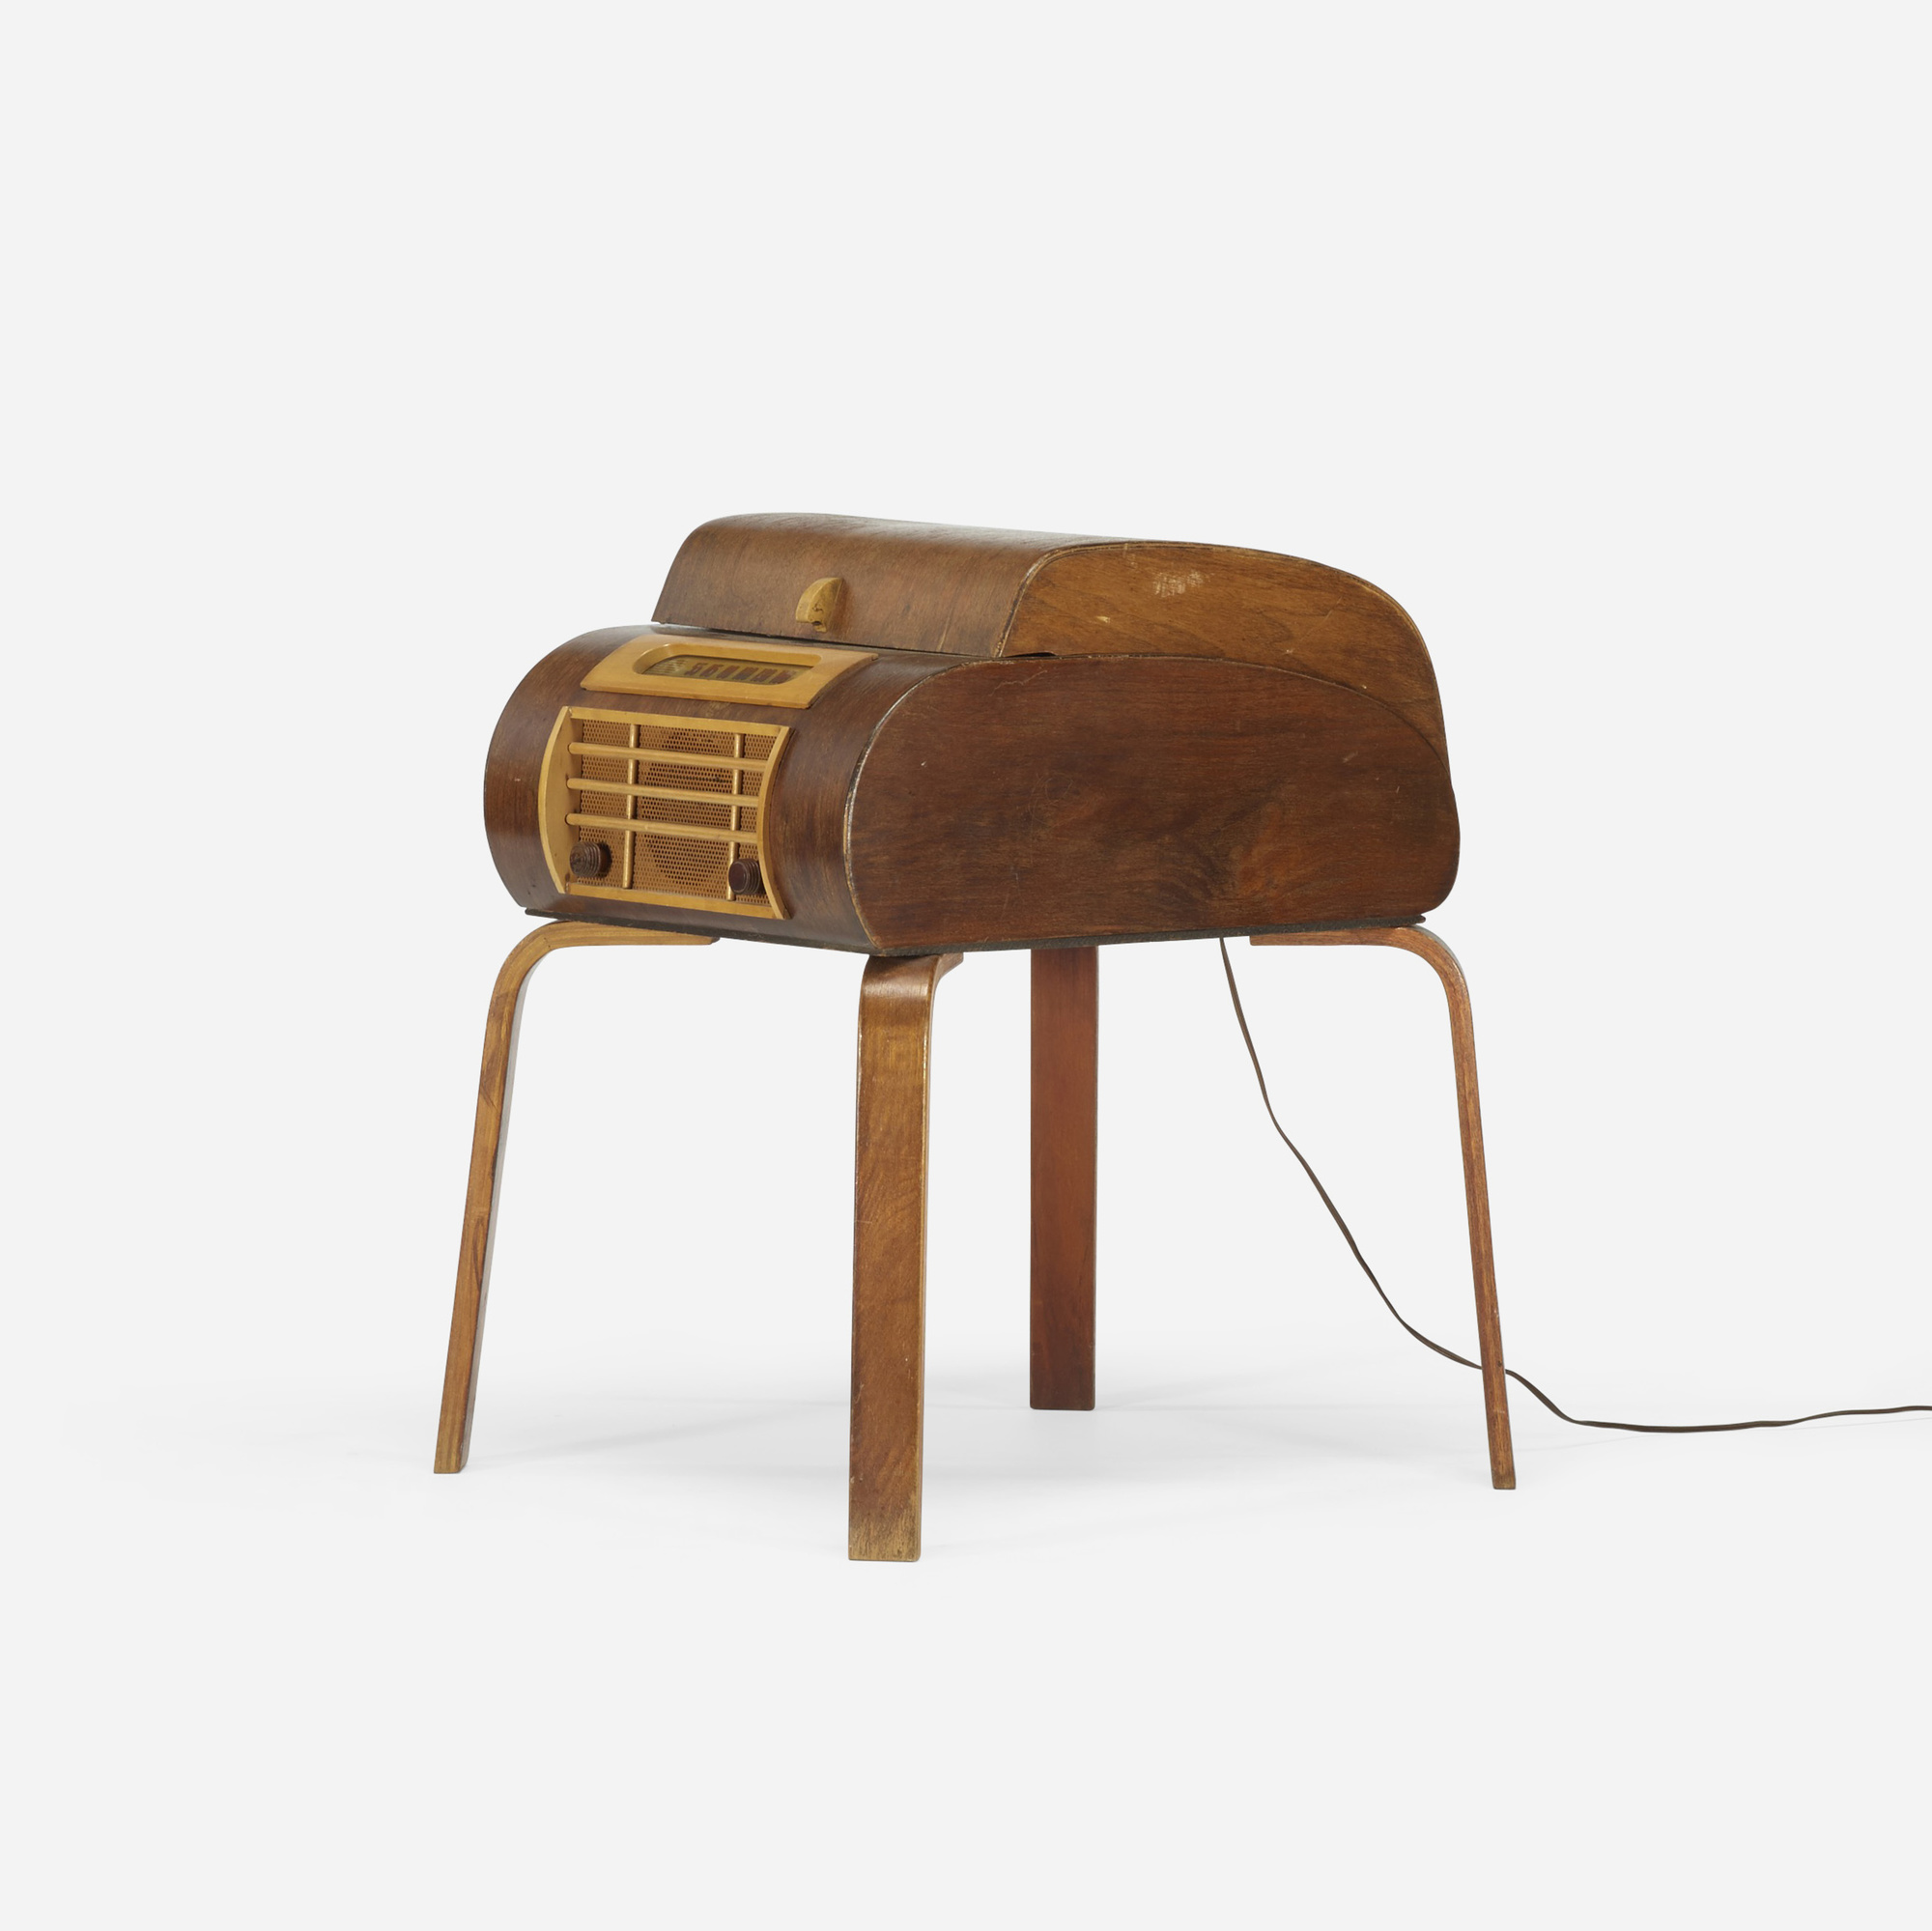 264: In the manner of Charles and Ray Eames / radio and turntable (2 of 3)